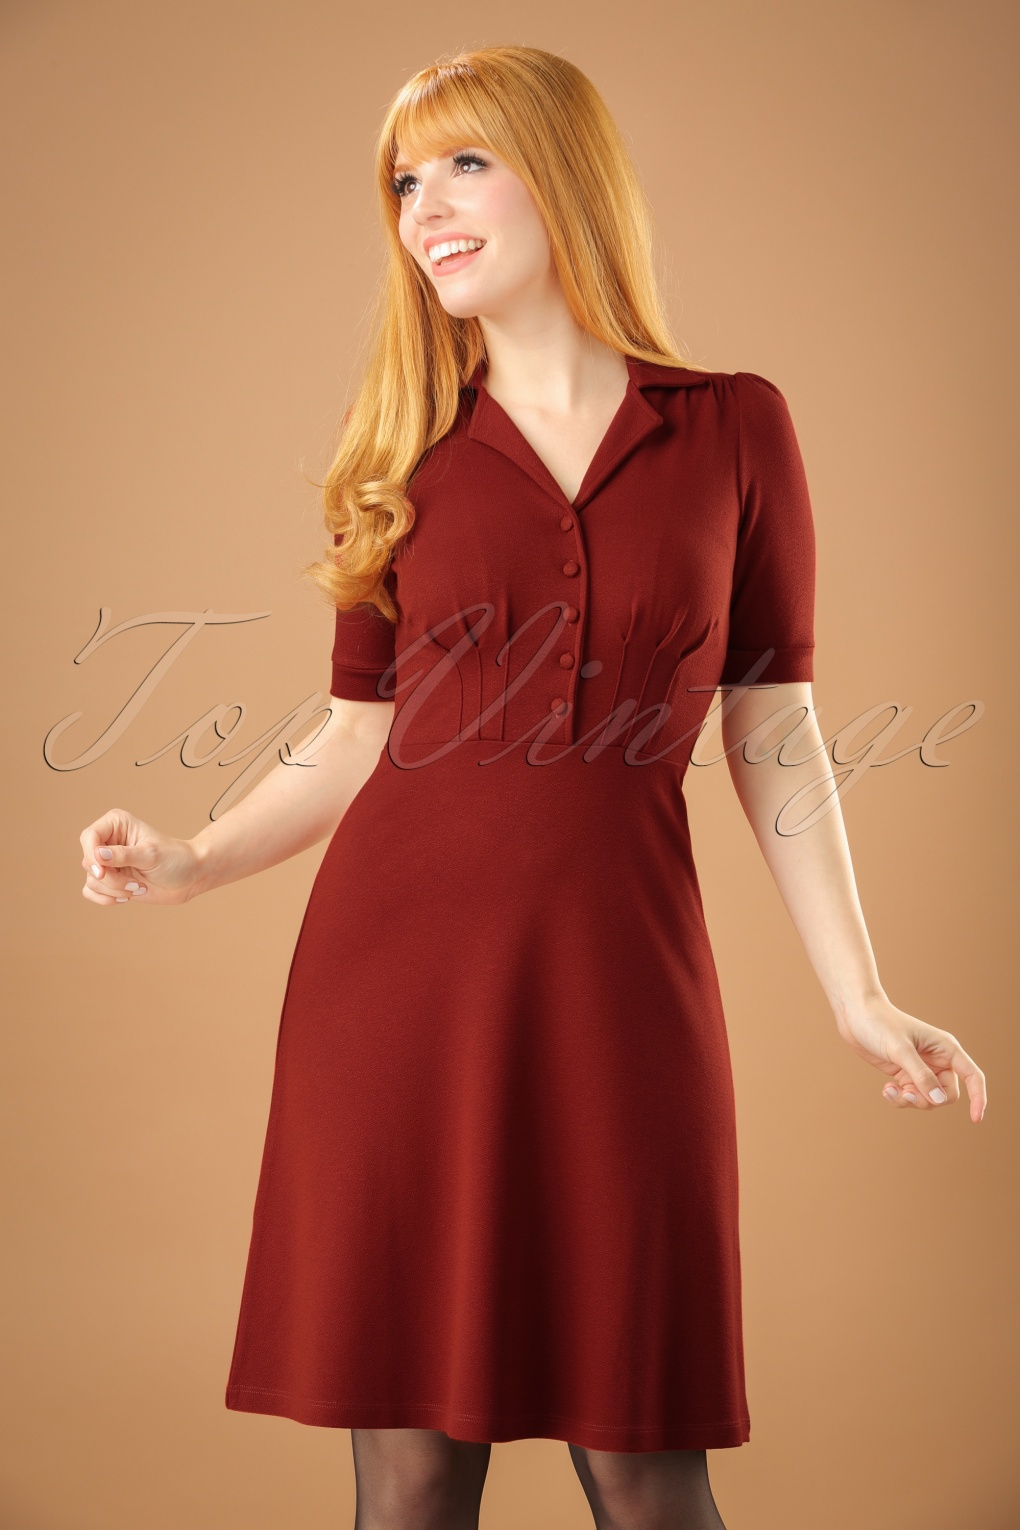 1940s Dresses and Clothing UK 40s Milano Diner Crepe Dress in Rio Red £100.05 AT vintagedancer.com